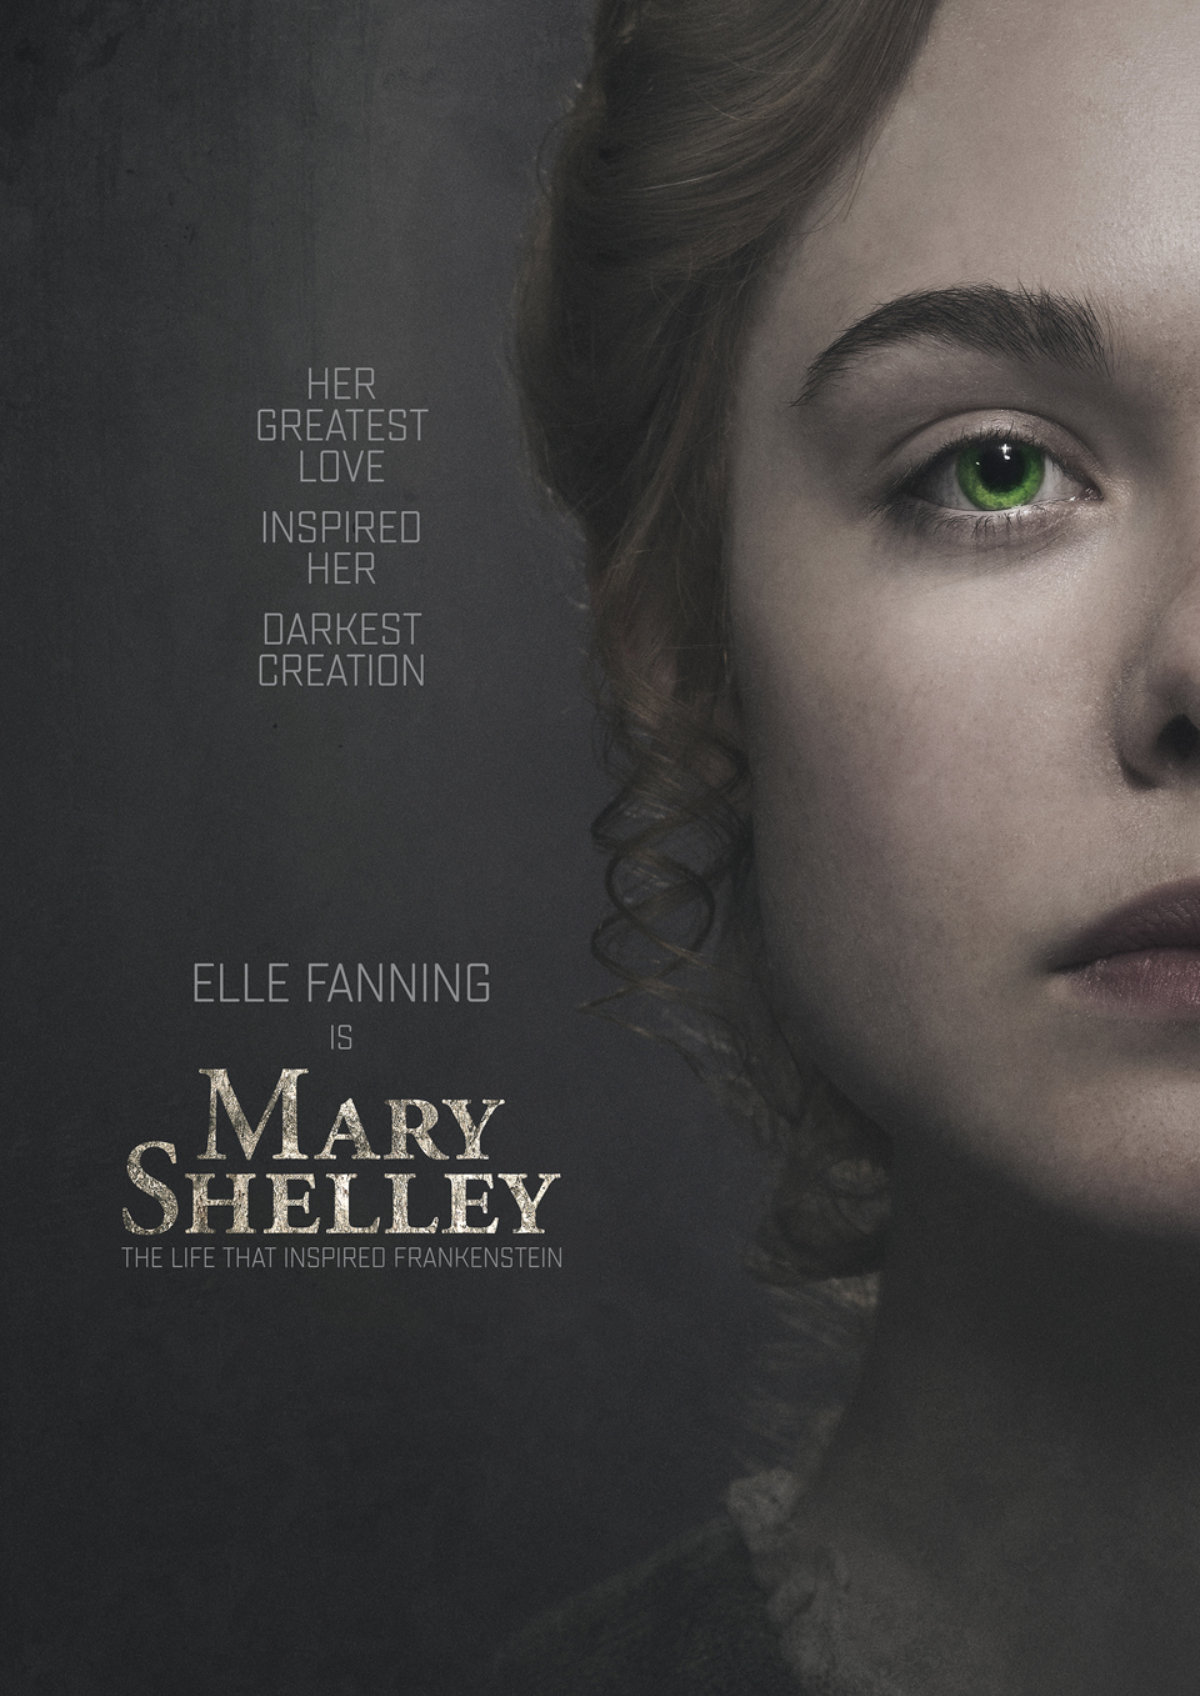 'Mary Shelley' movie poster